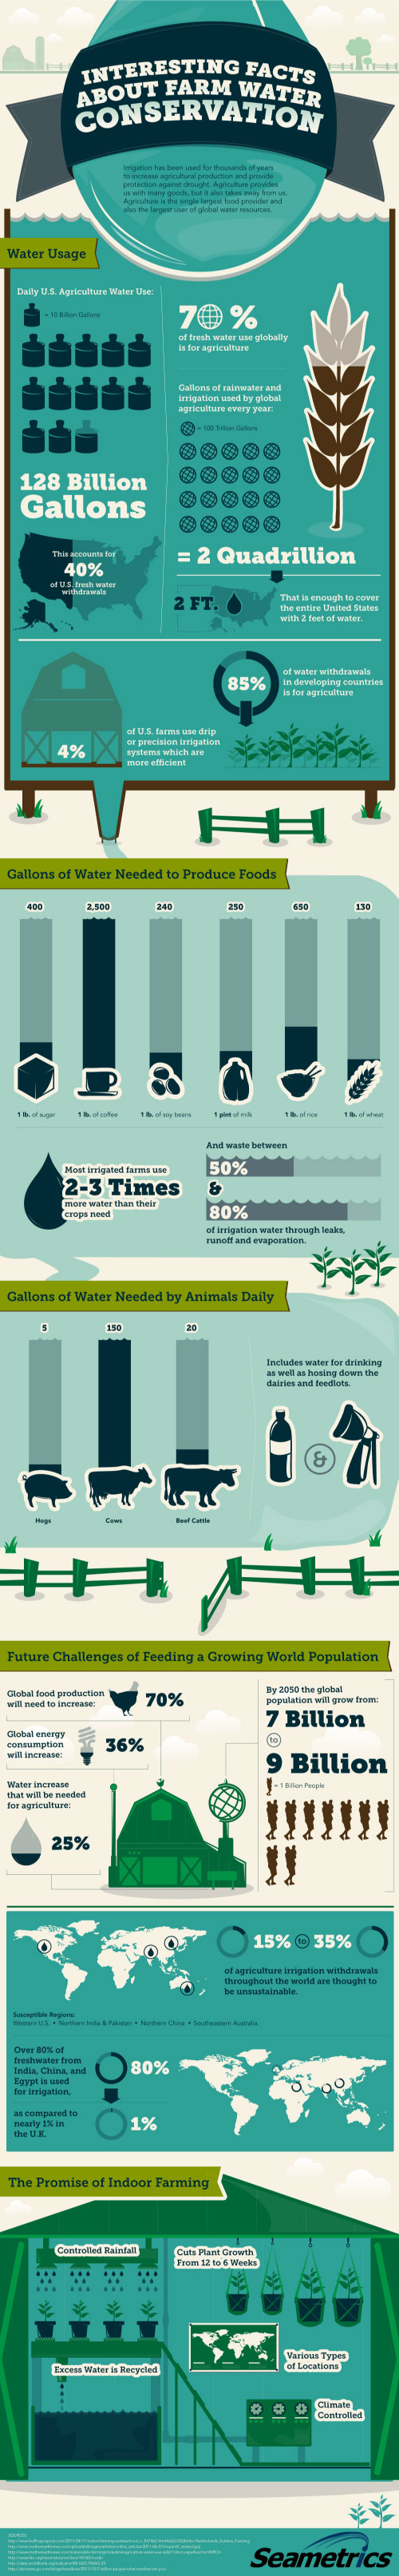 Farm-Water-Conservation-infographic